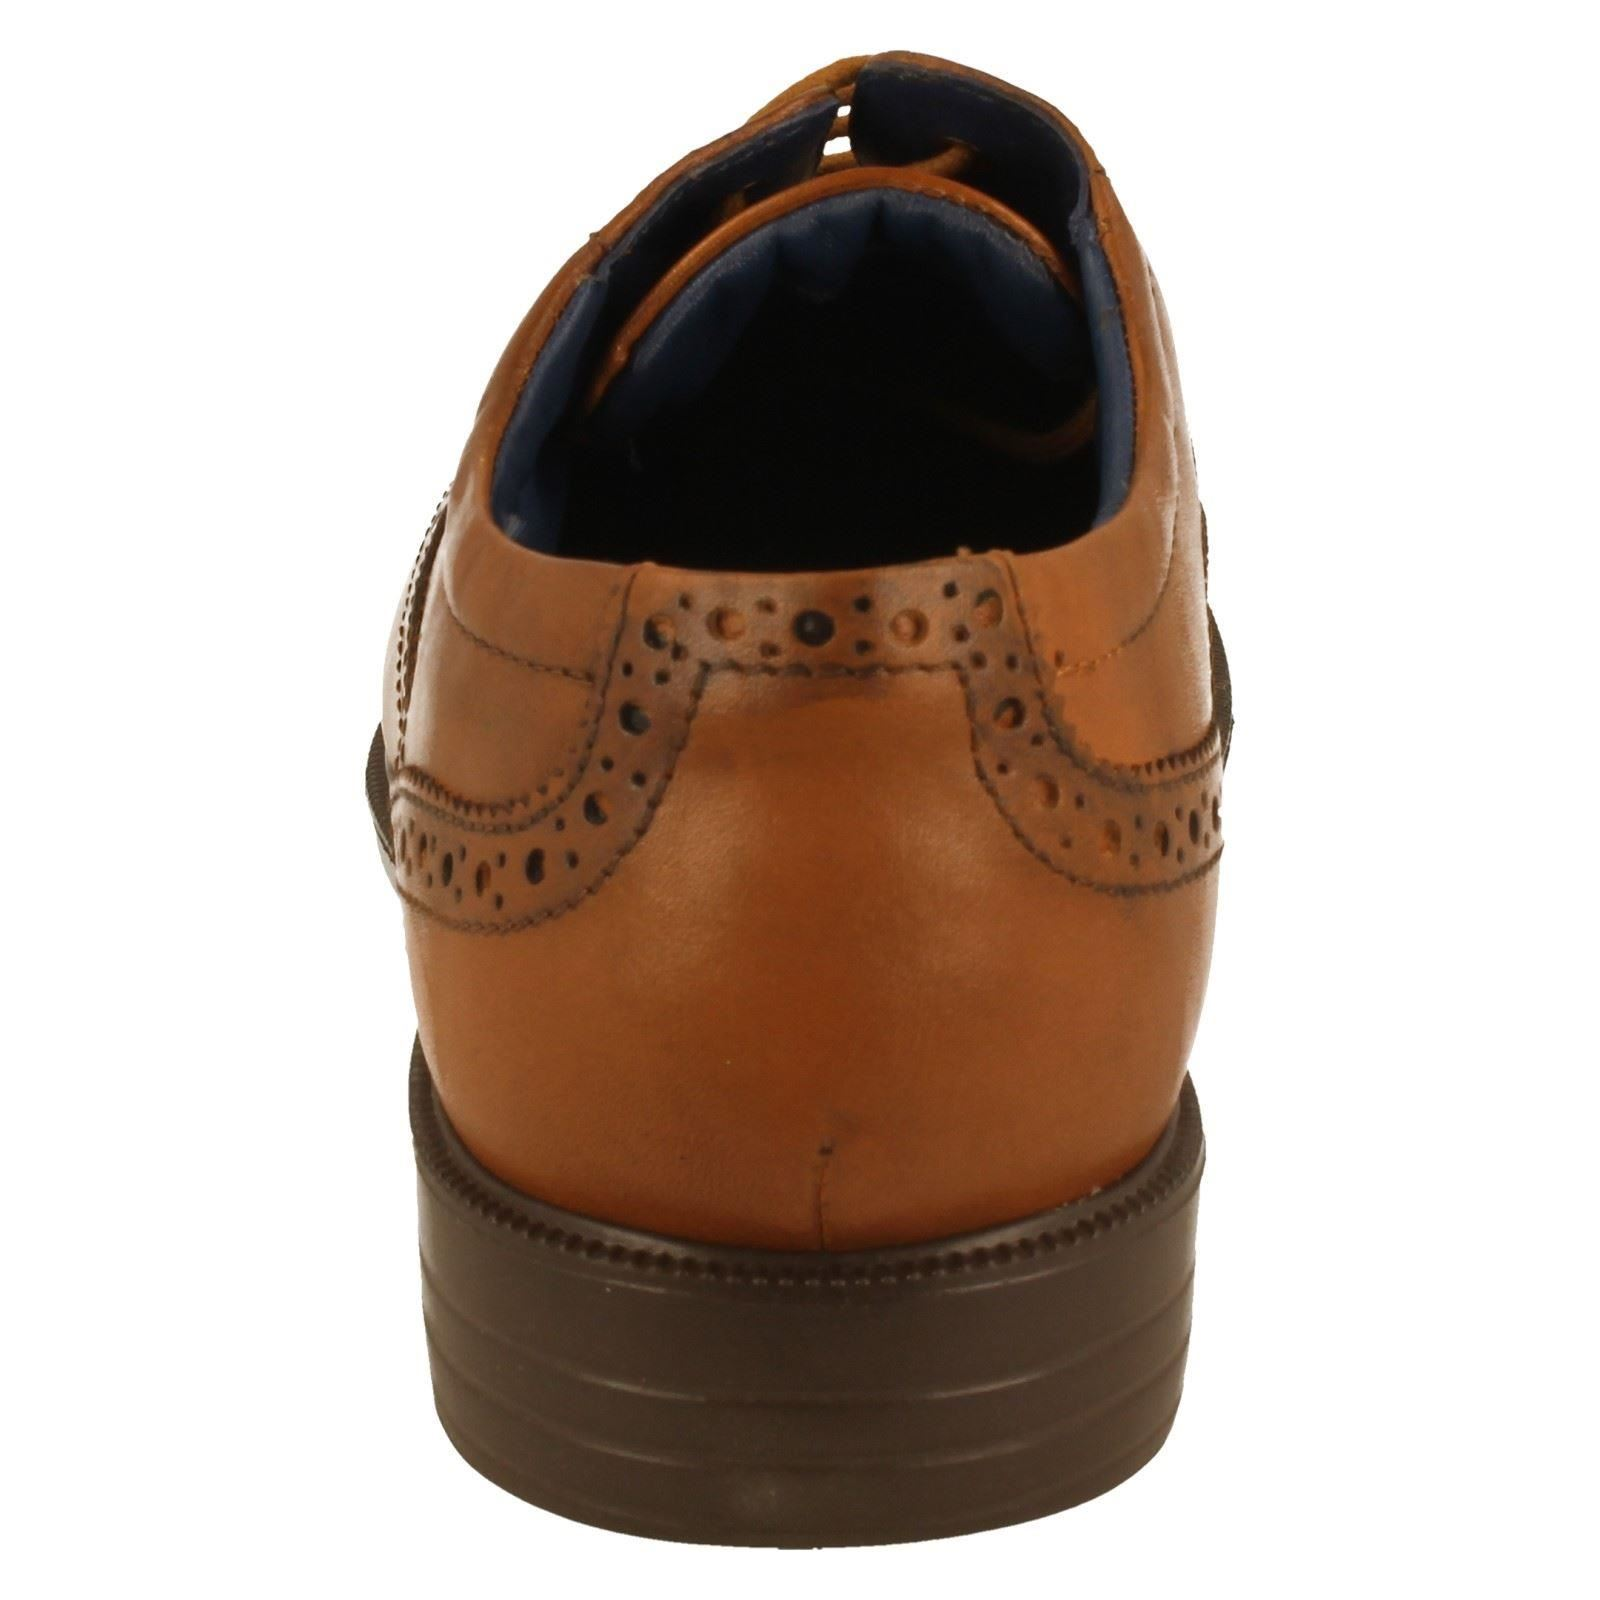 Mens Padders Shoes The The Shoes Style Berkeley-W d0c735